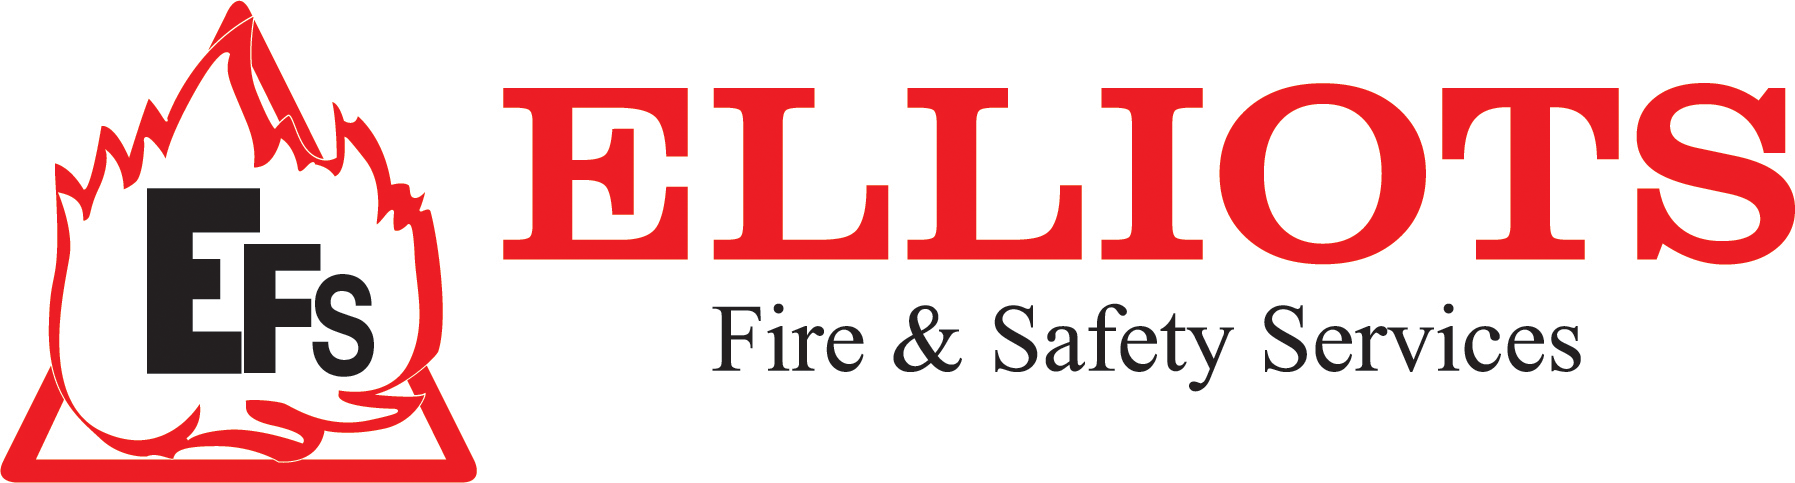 Elliots Fire and Safety Services